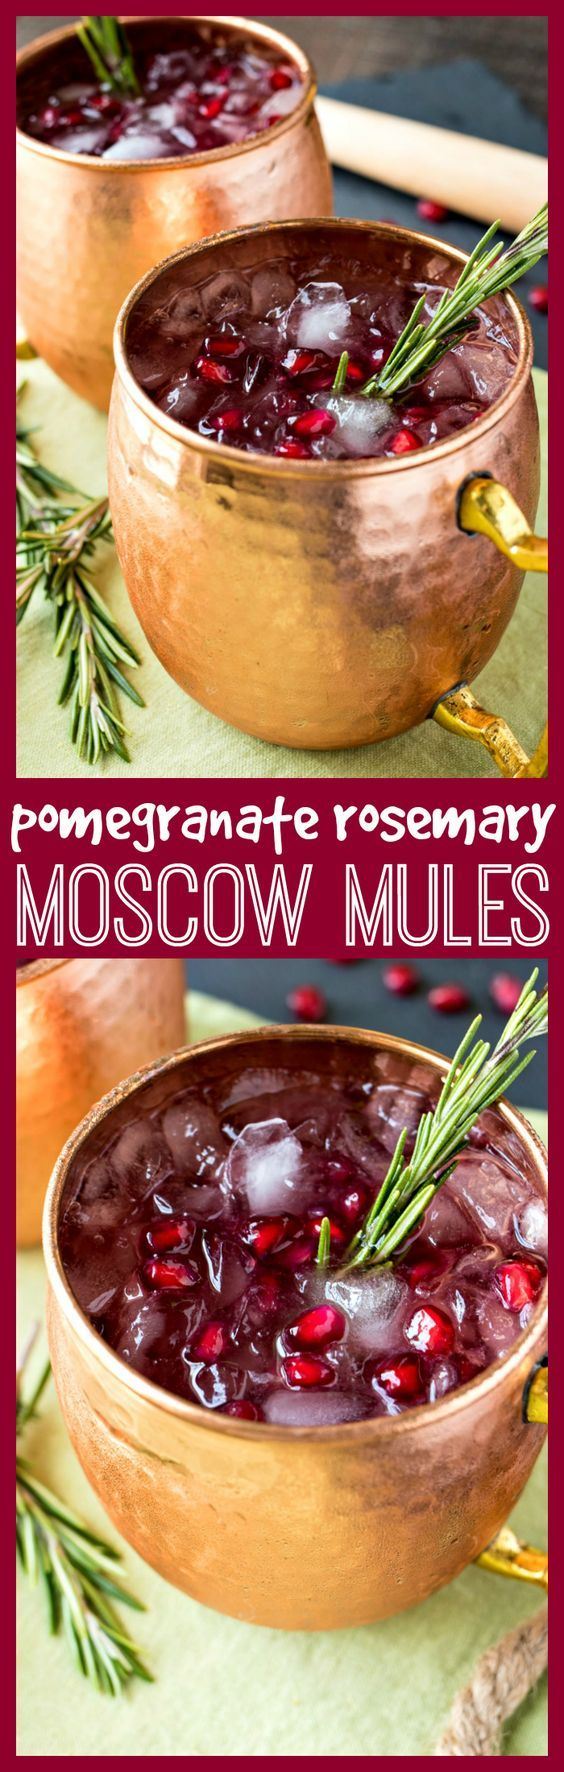 Pomegranate Rosemary Moscow Mule – A festive twist on the classic Moscow Mule, made with bruised rosemary, pomegranate juice and Schweppes ® Ginger Ale #ad #moscowmules #christmas #holidays #Cocktail